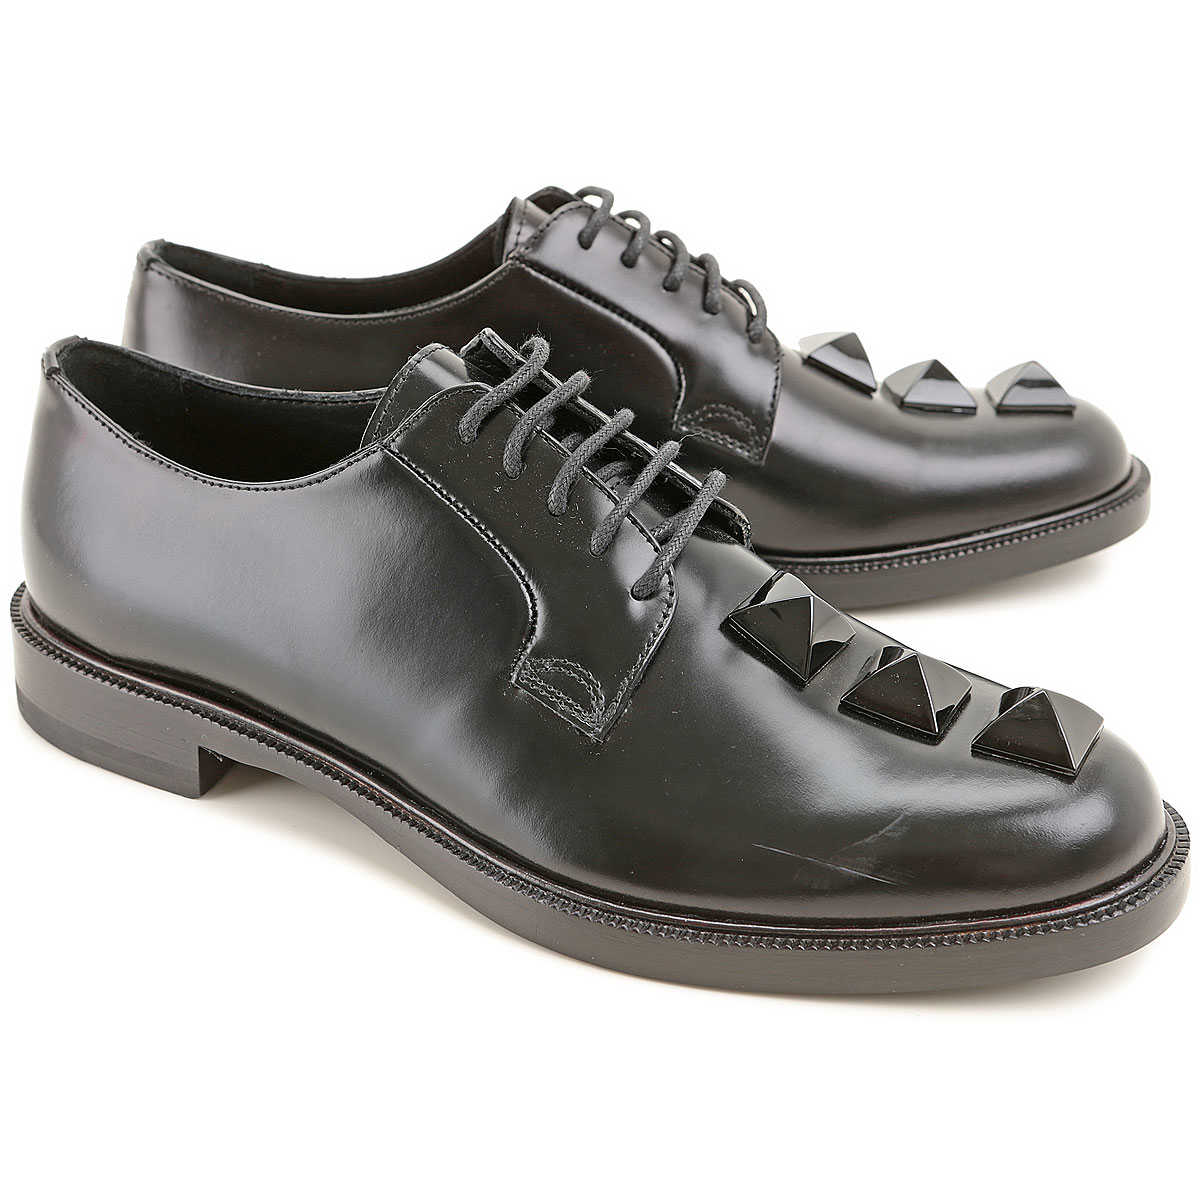 Giacomorelli Lace Up Shoes for Men Oxfords Derbies and Brogues On Sale in Outlet SE - GOOFASH